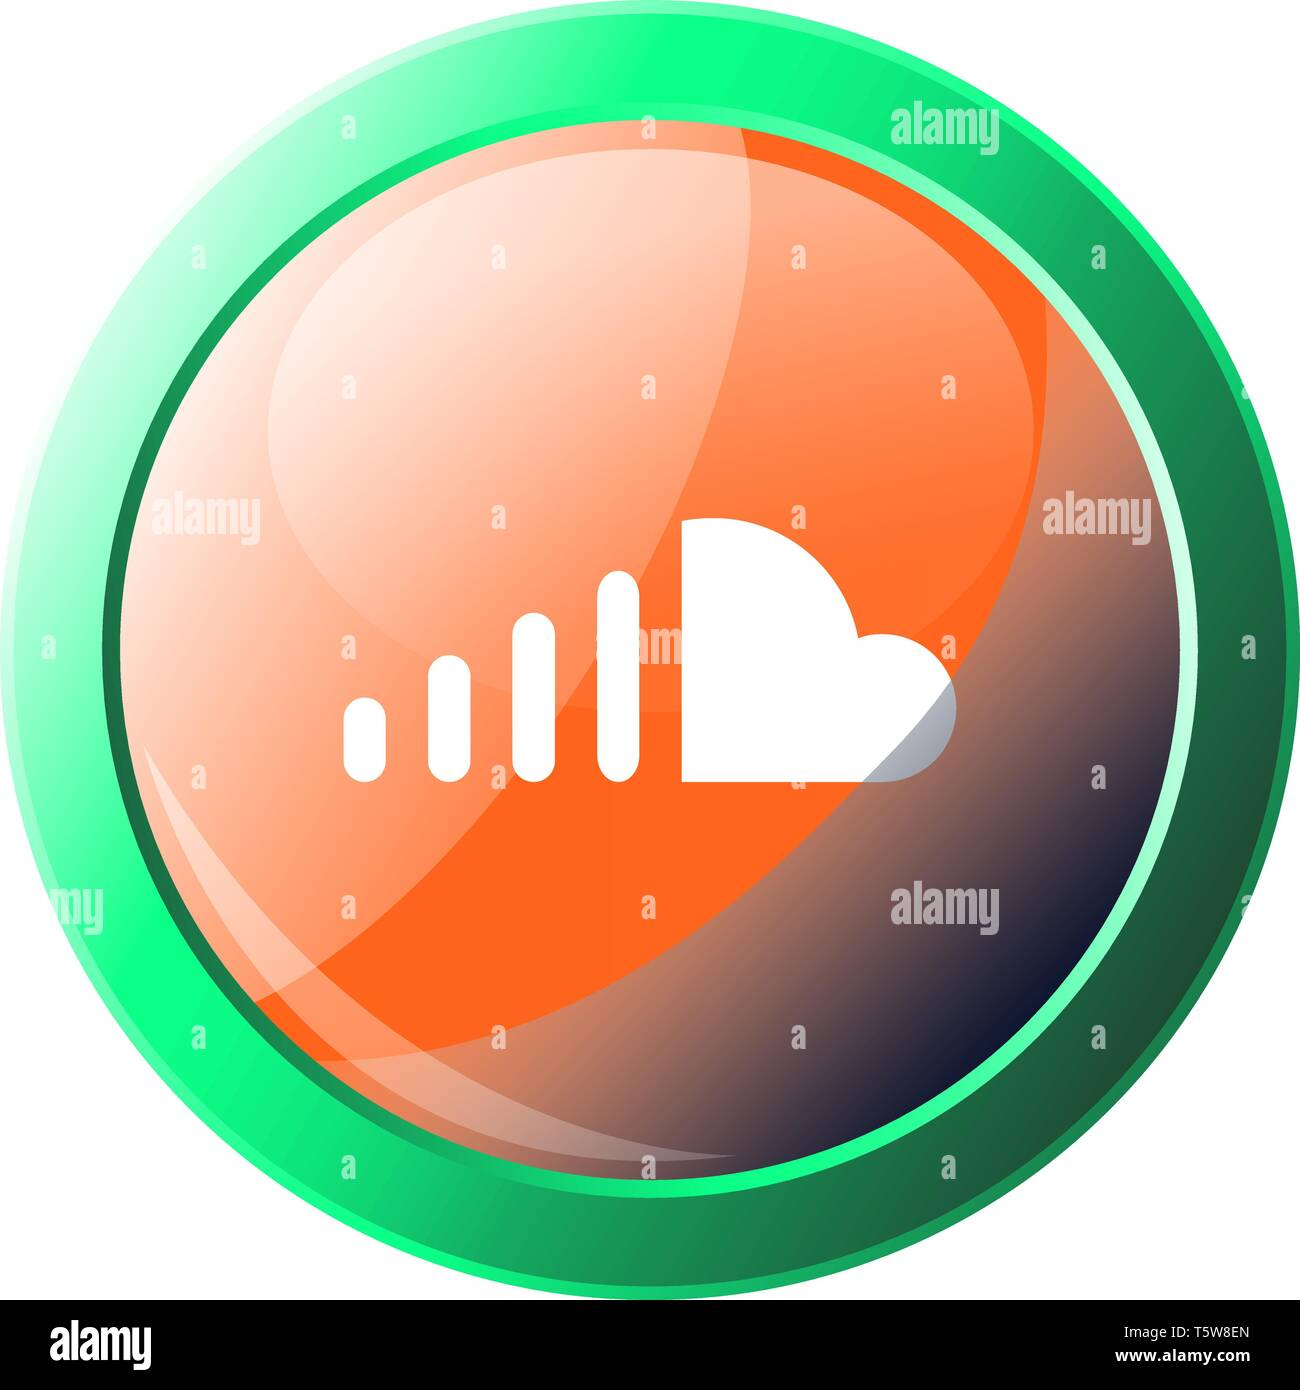 SoundCloud sign with green frame vector icon illustration on